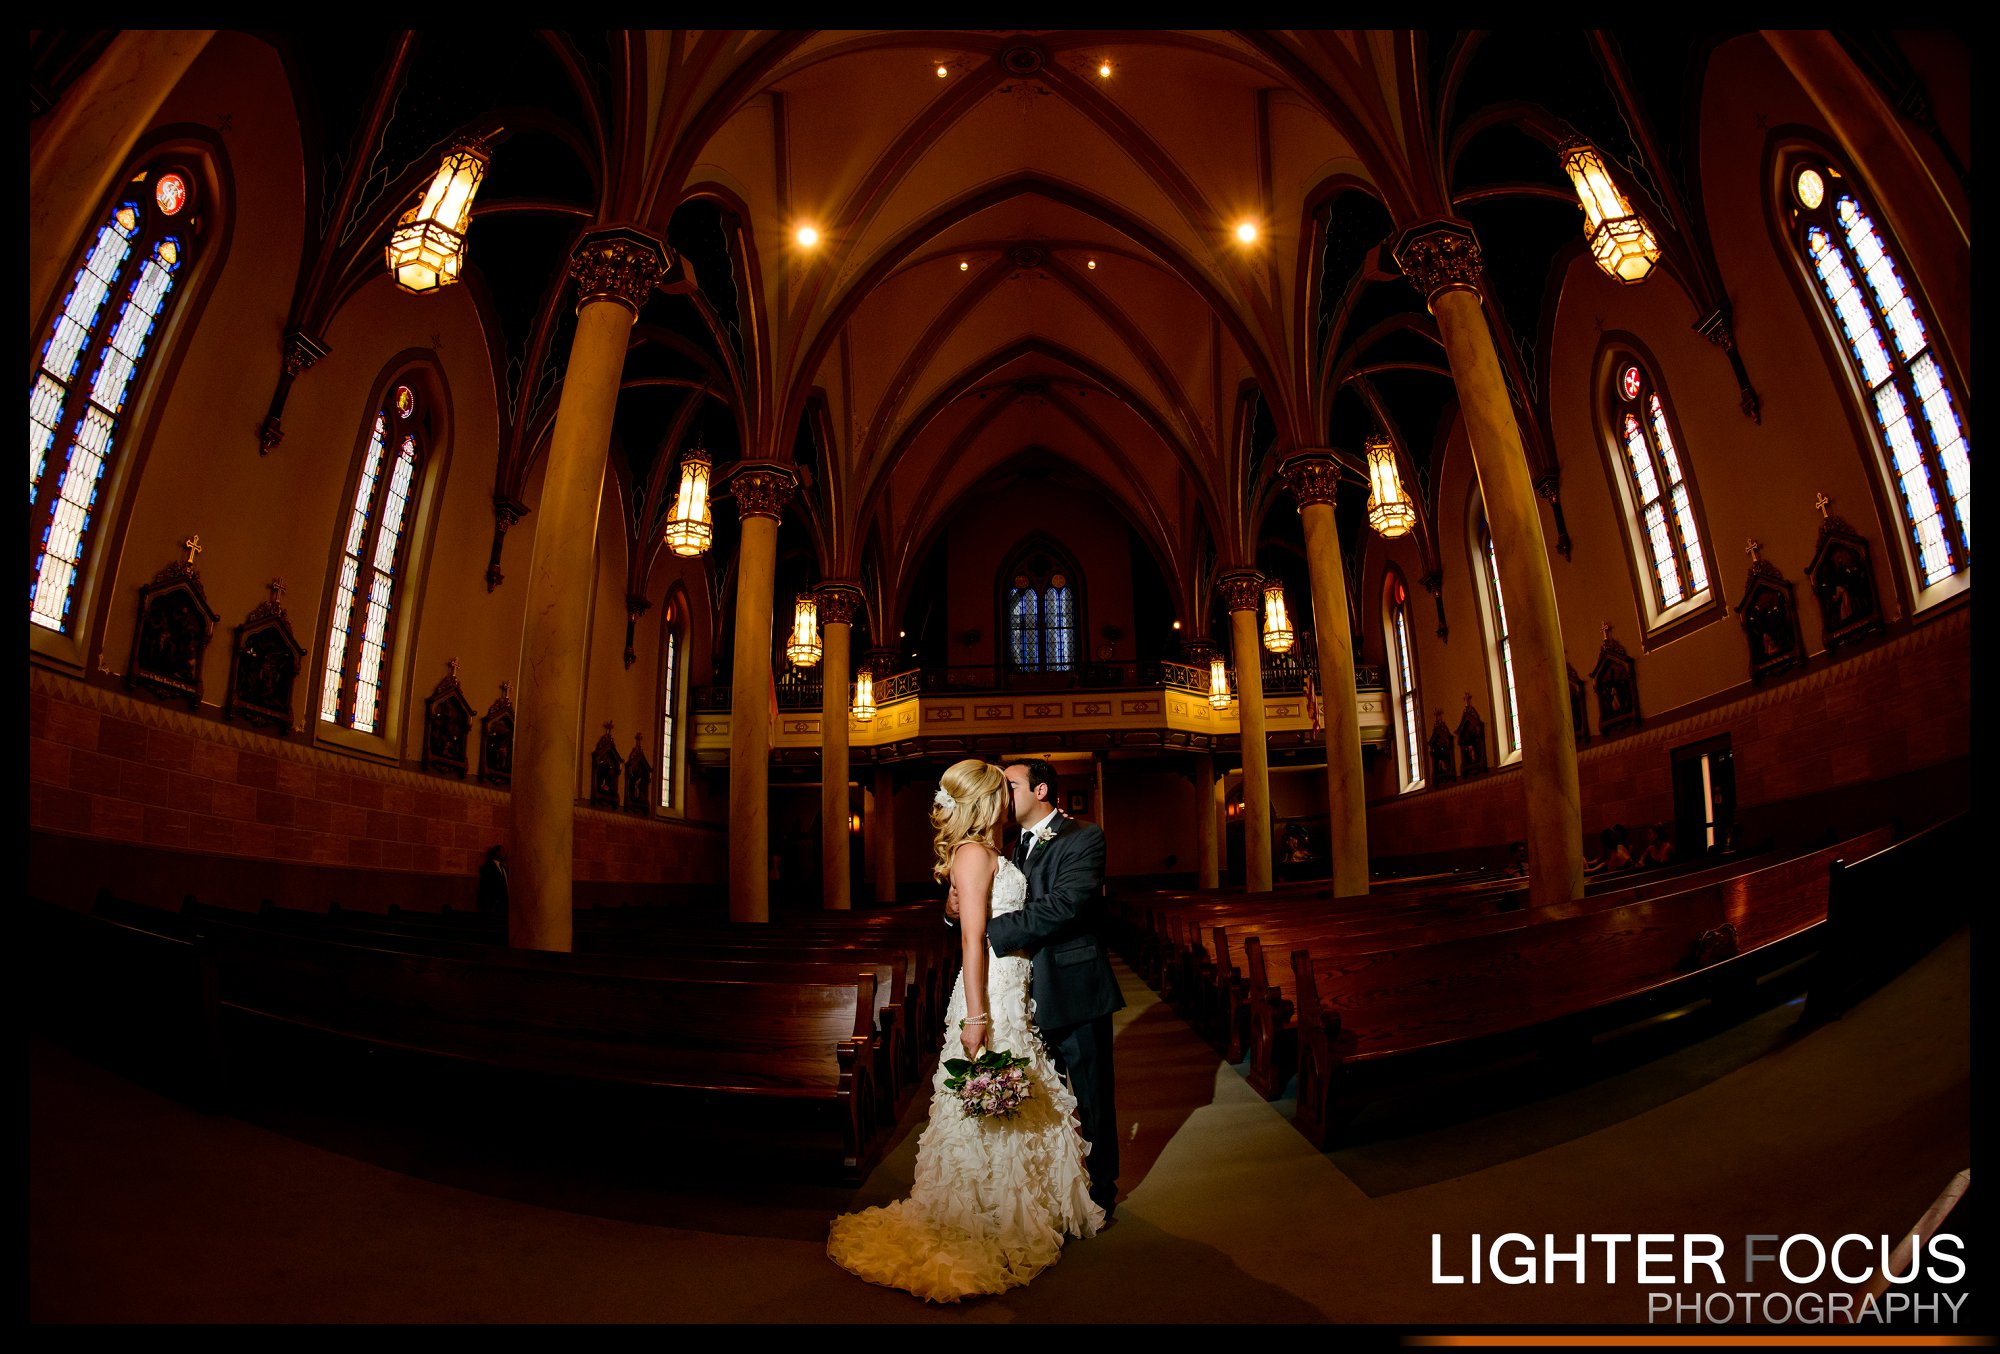 Joe & Ashley | Jefferson City Wedding | Lighter Focus Photography